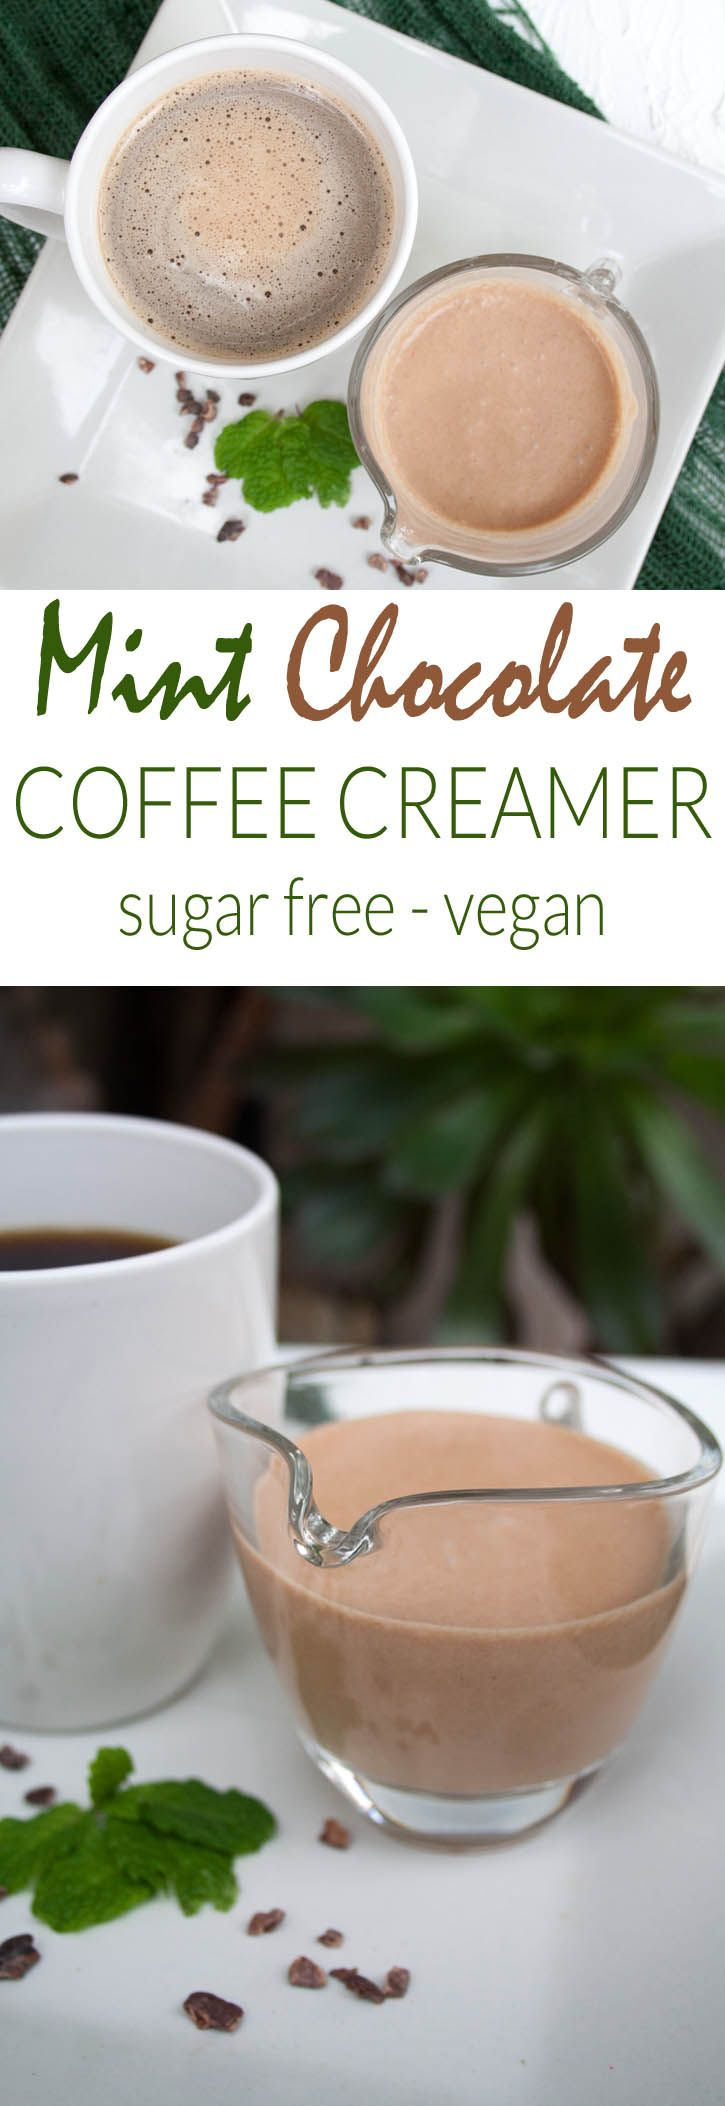 Mint Chocolate Coffee Creamer (vegan, gluten free, sugar free) - This recipe is made with only five ingredients, and takes only a couple minutes to make.